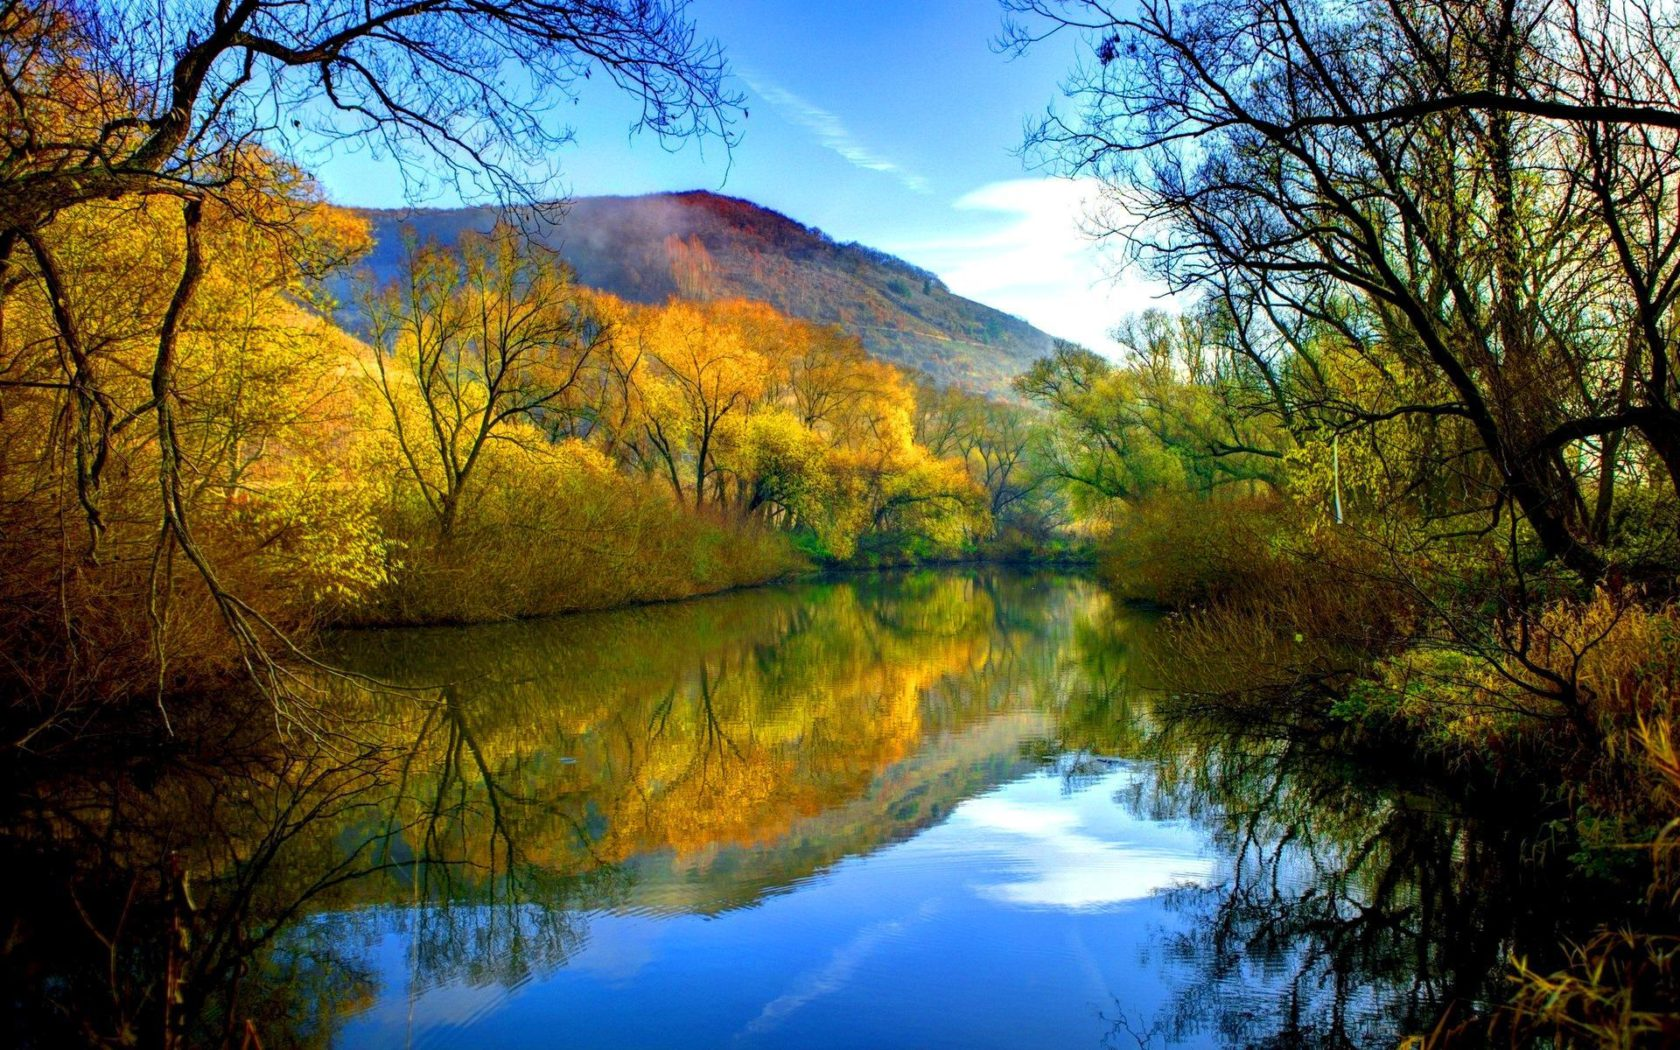 Snow Falling Wallpaper For Iphone Fall River Peaceful Water Willow With Yellow Leaves Blue